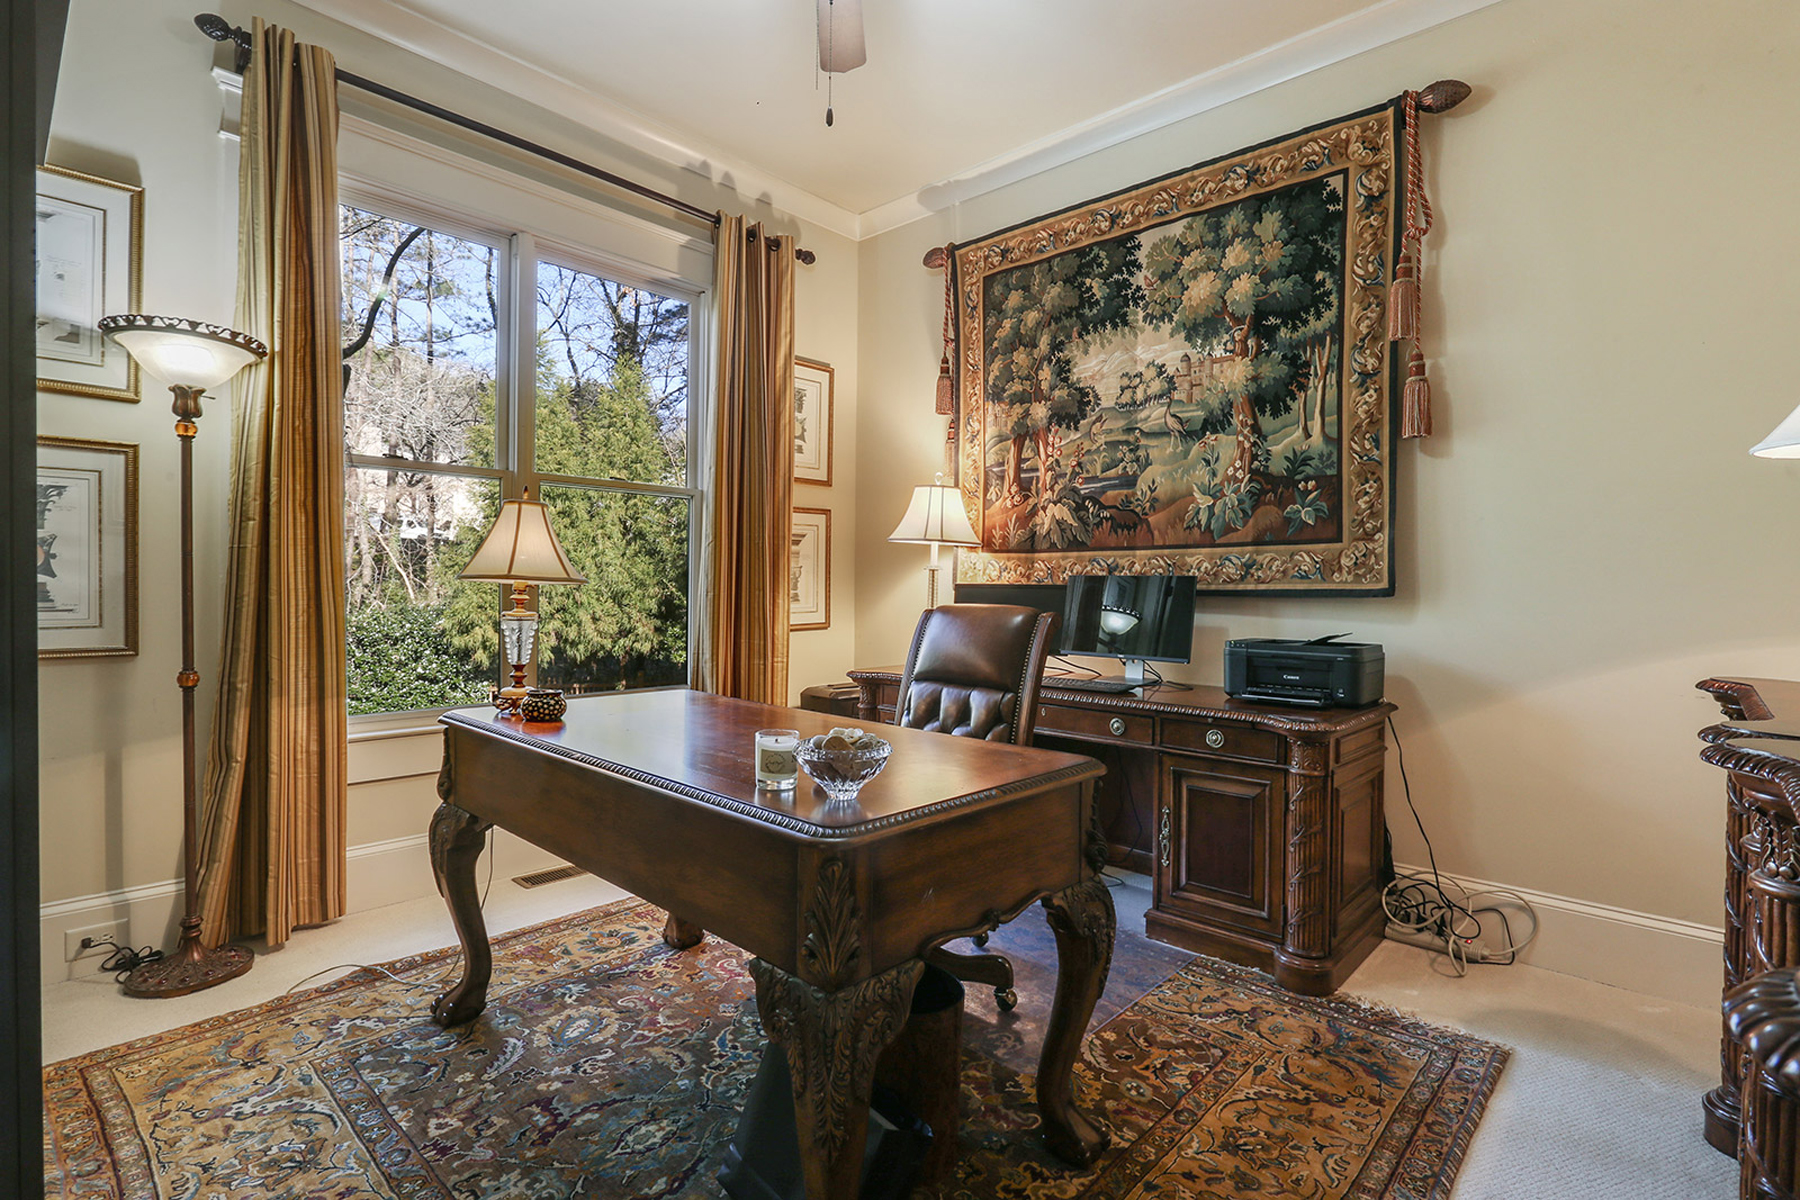 Additional photo for property listing at Meticulous Home In The Heart Of Vinings 3830 Randall Farm Road SE Atlanta, Georgia 30339 United States